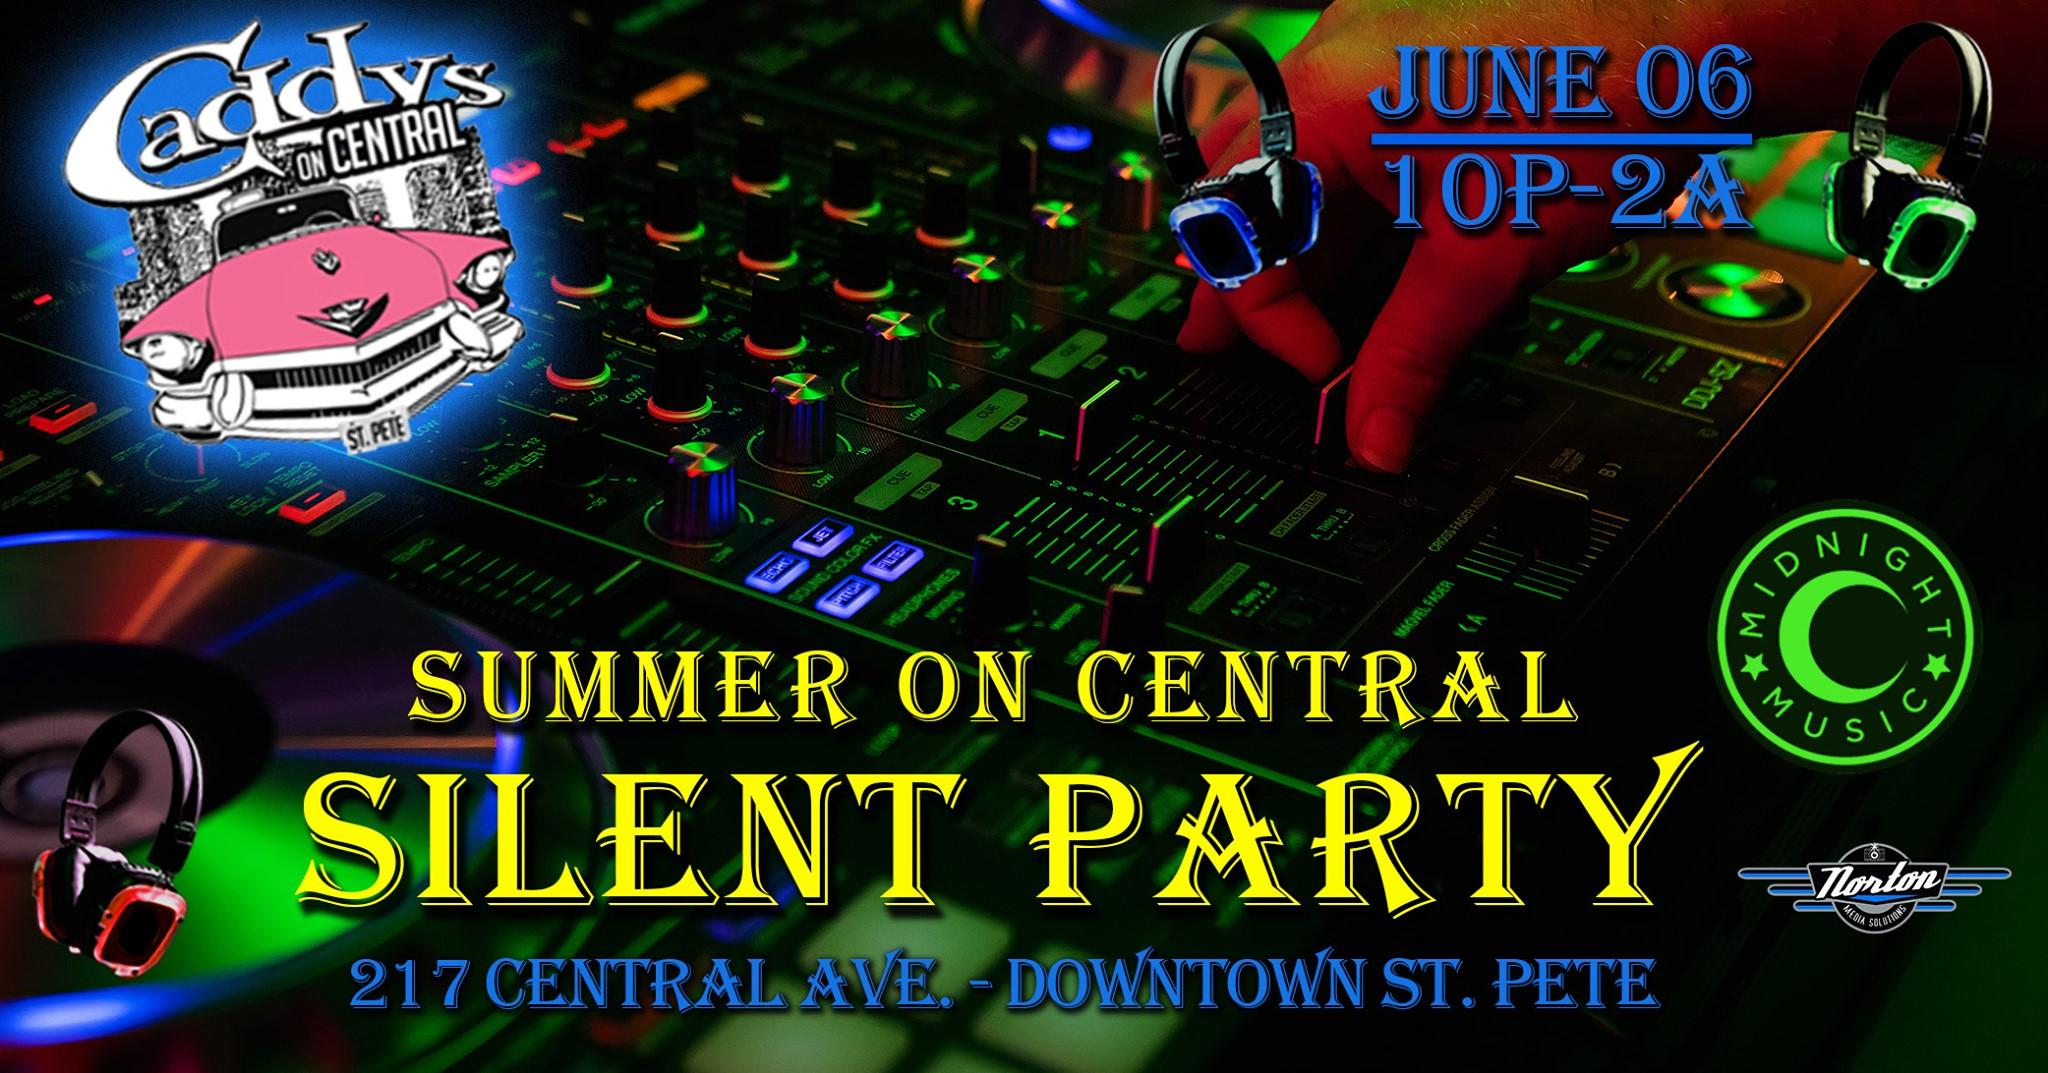 Summer on Central Silent Party